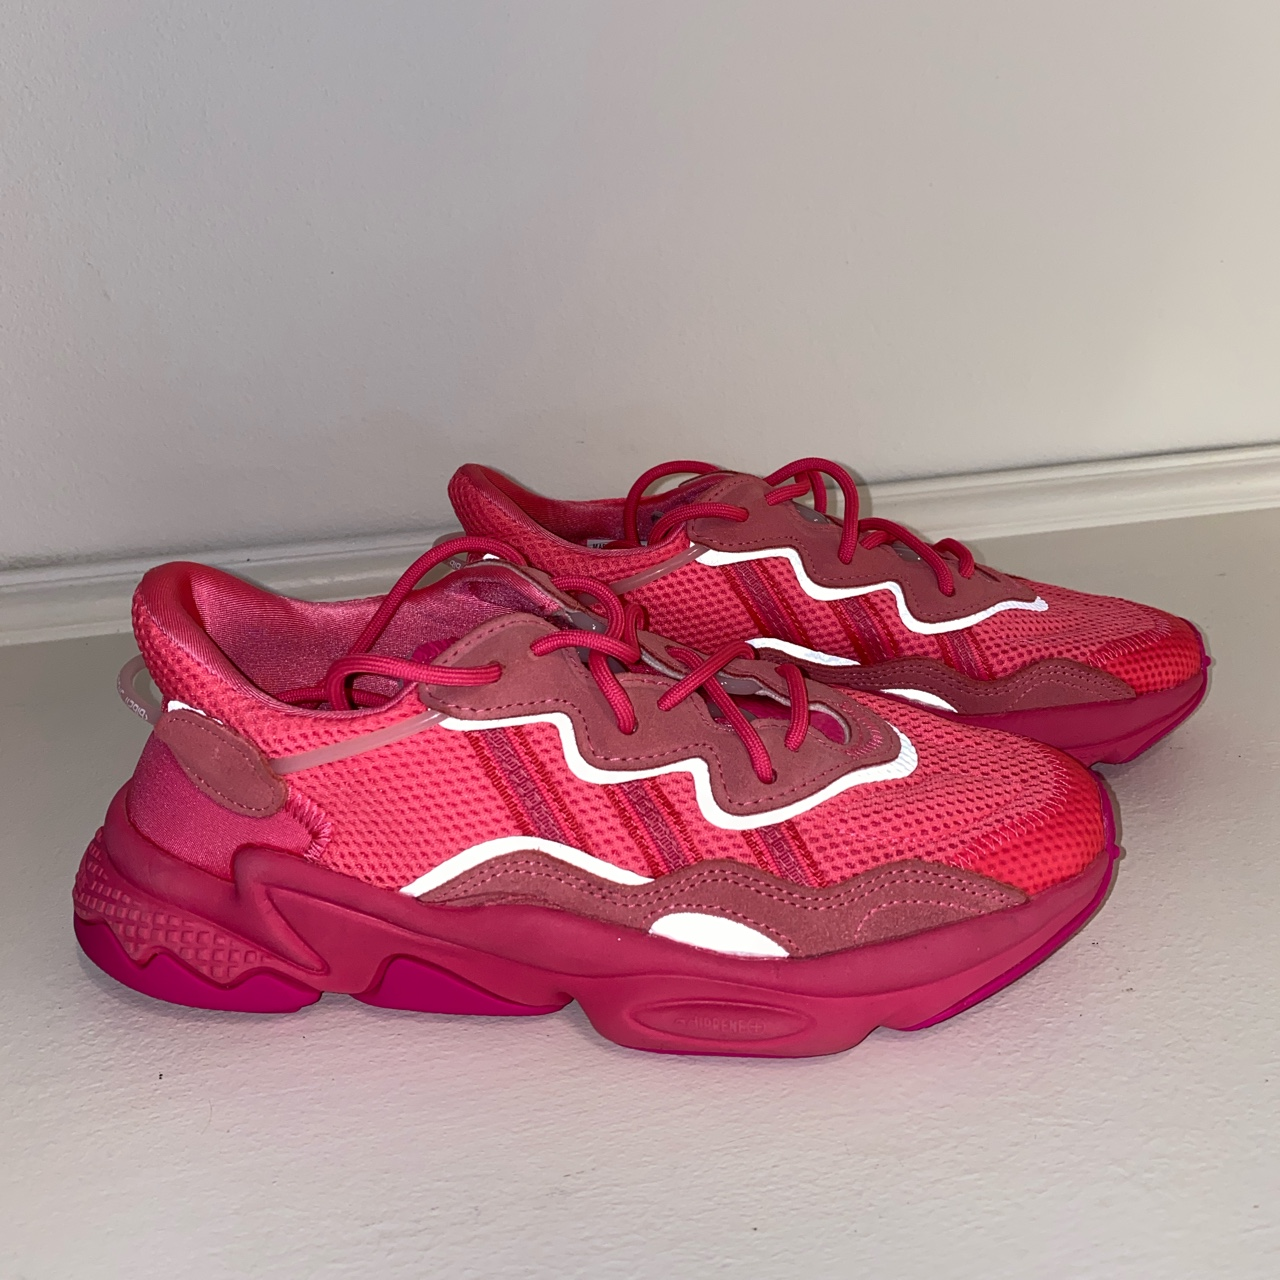 Adidas ozweego orchid tint , Bright pink , Size 6...